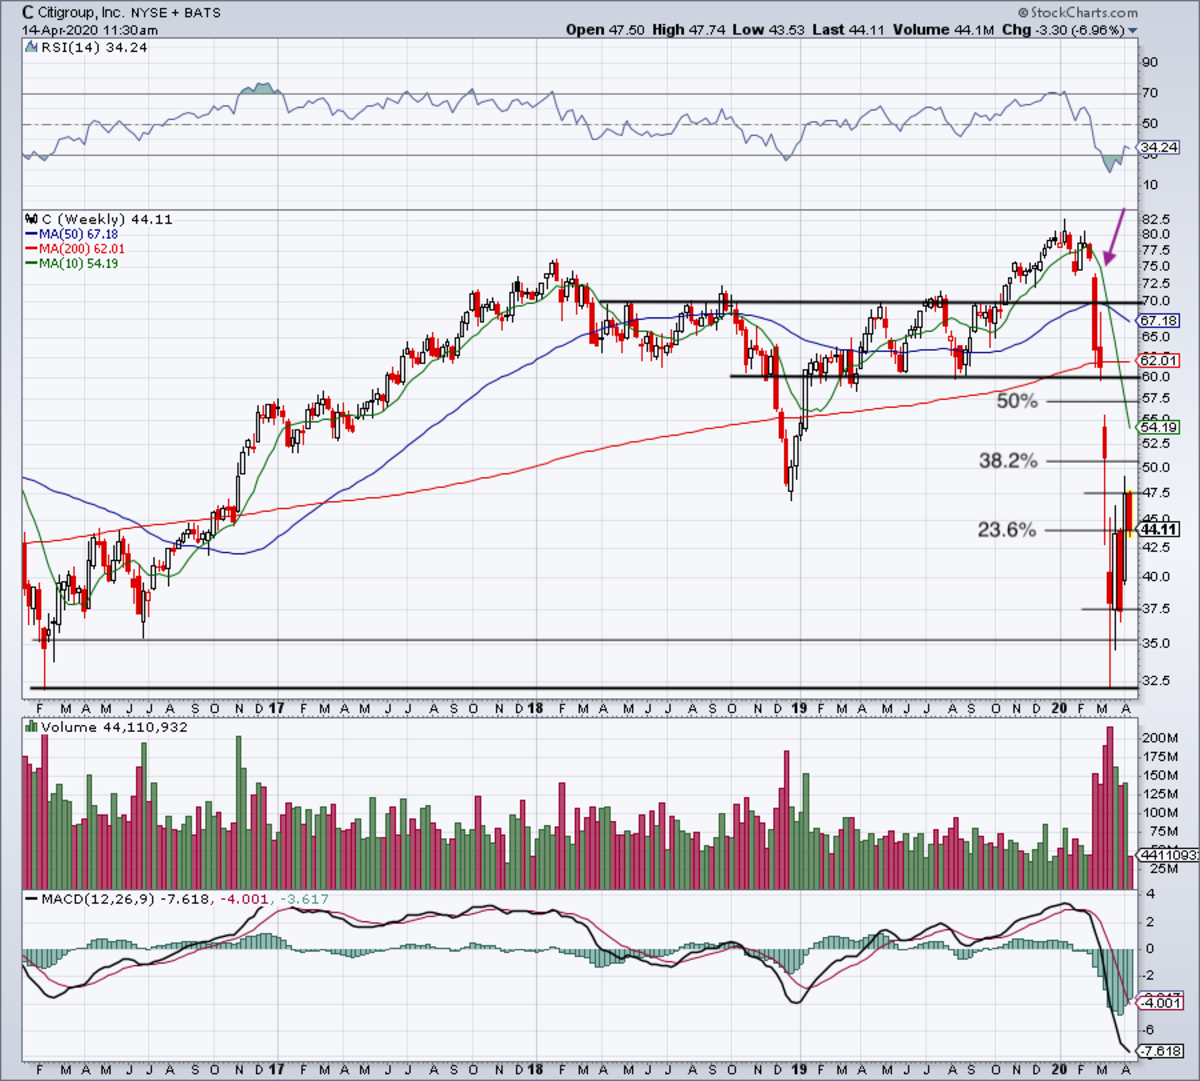 Weekly chart of Citigroup stock.